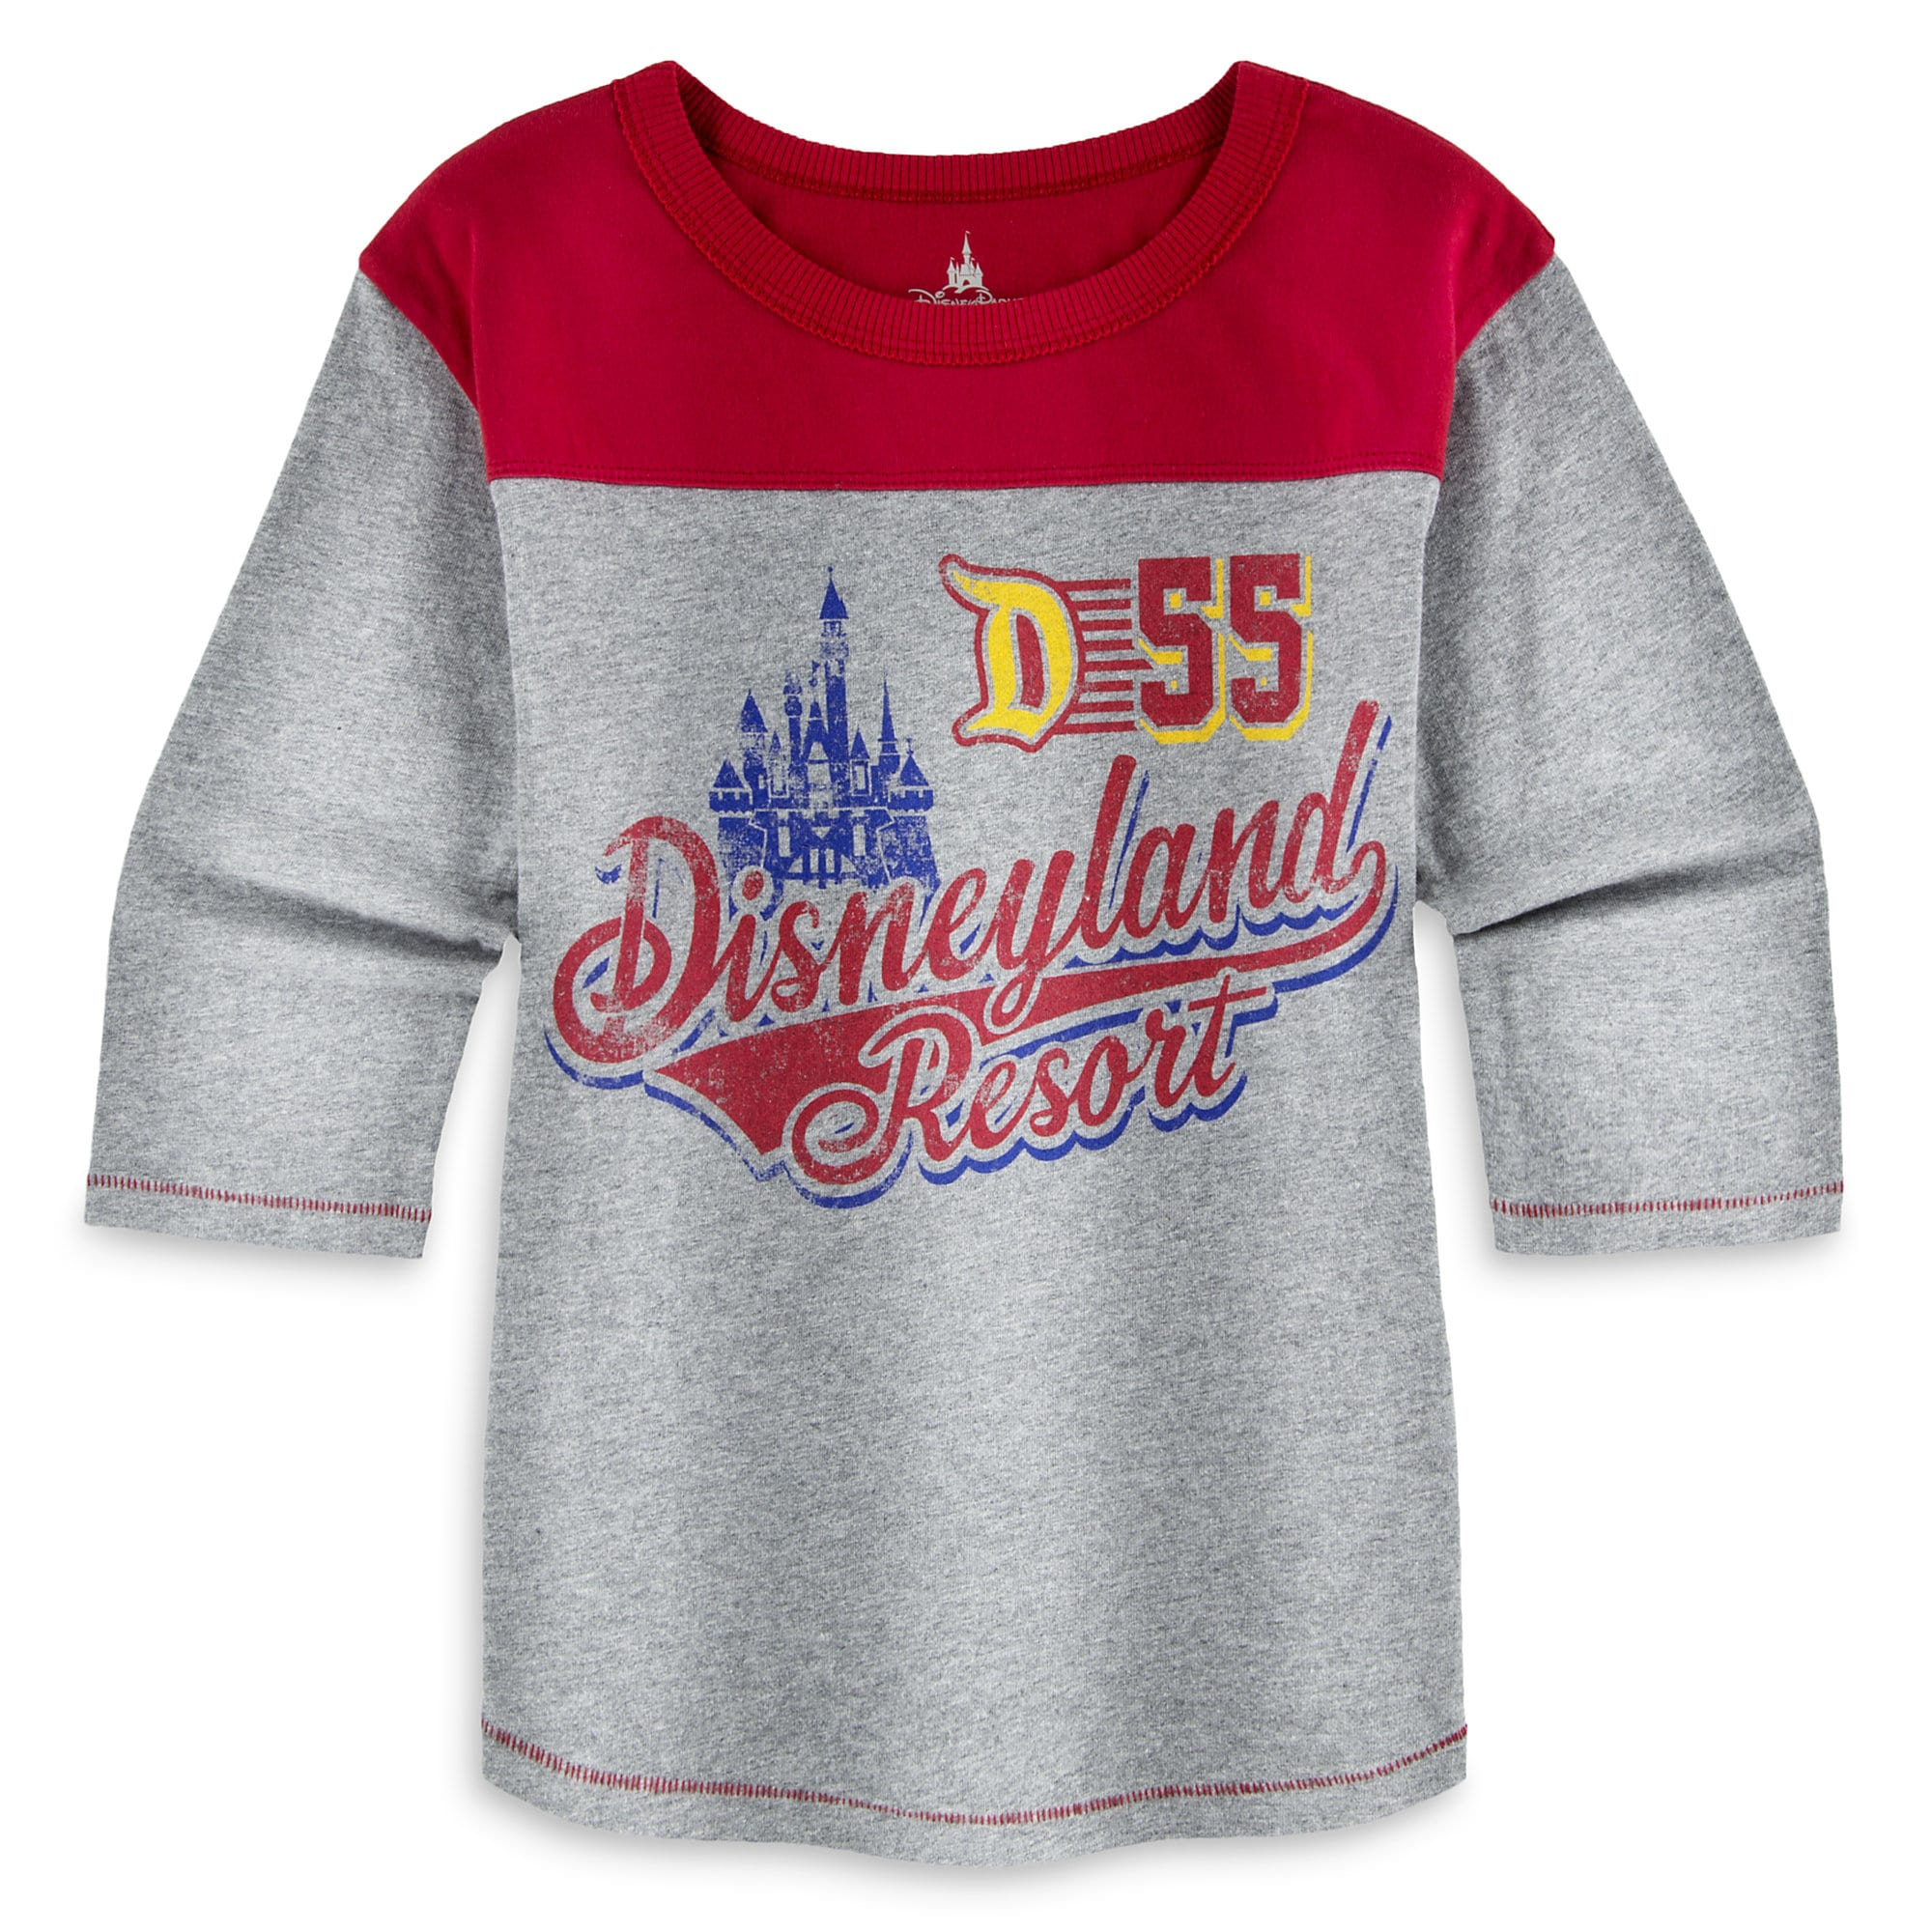 Disneyland Sweatshirt - Girls